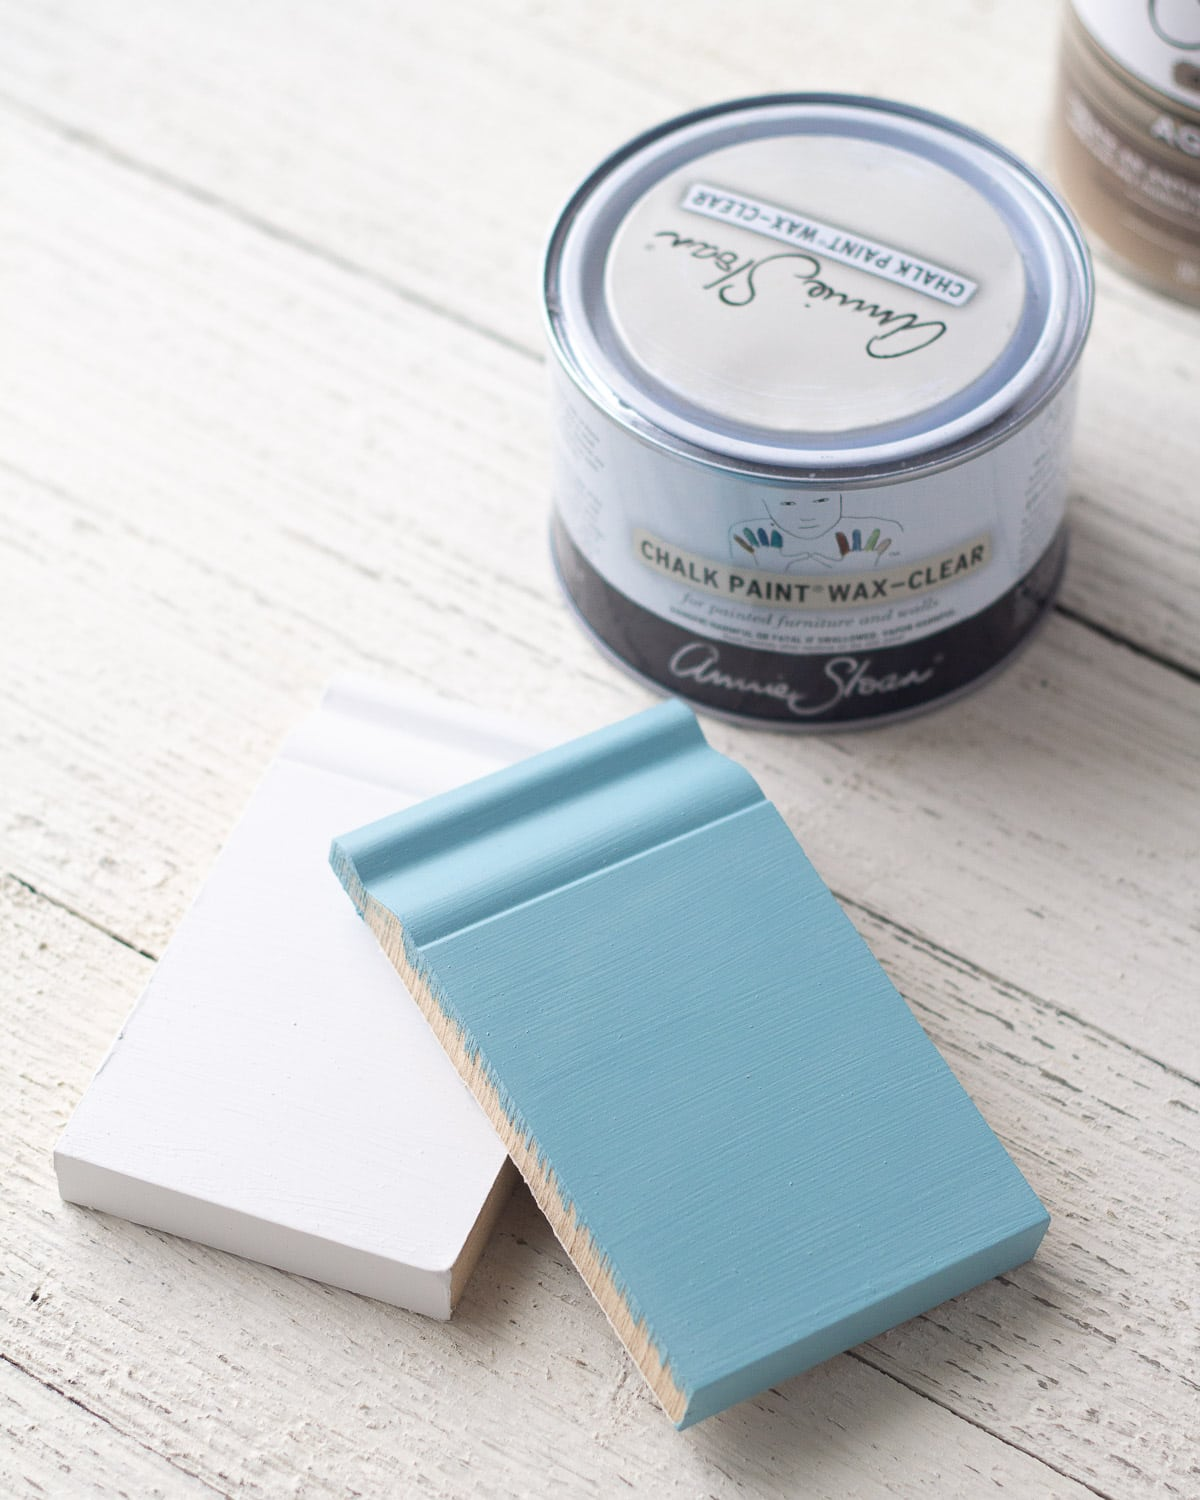 Two small samples of trim painted with white and blue chalk paint and finished with Annie Sloan Clear Wax.